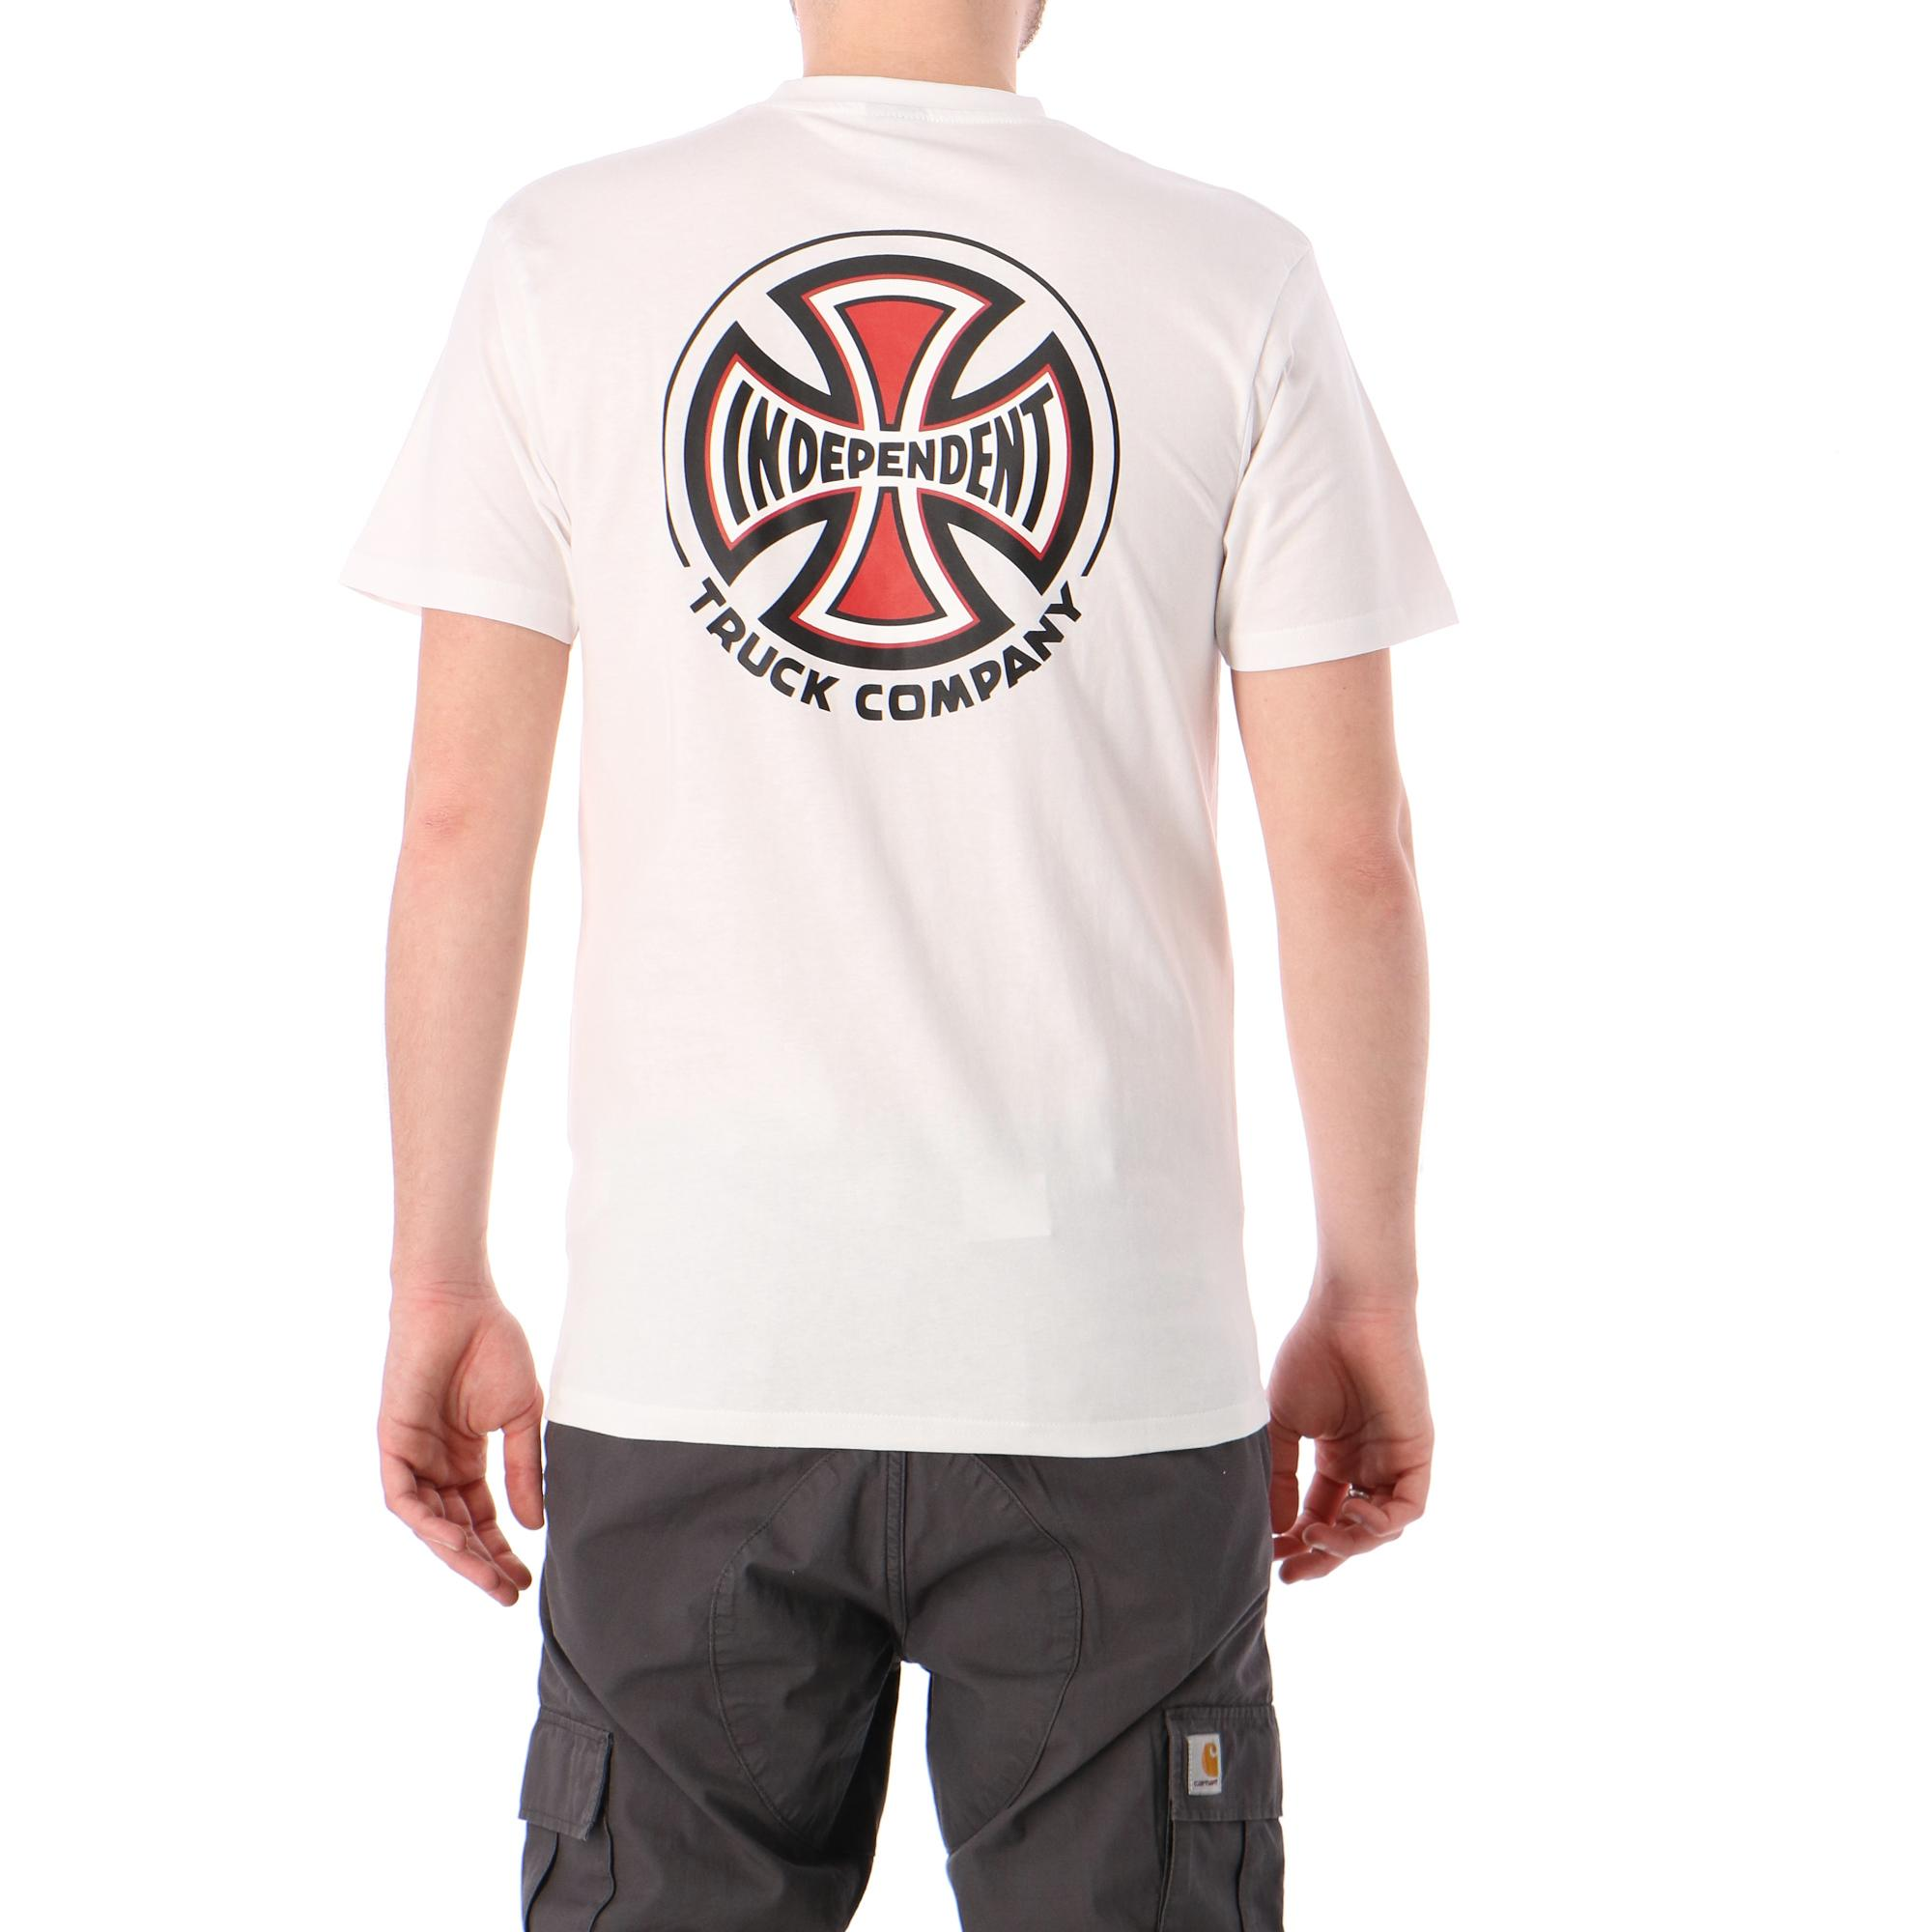 Independent Big Truck Co T-shirt WHITE